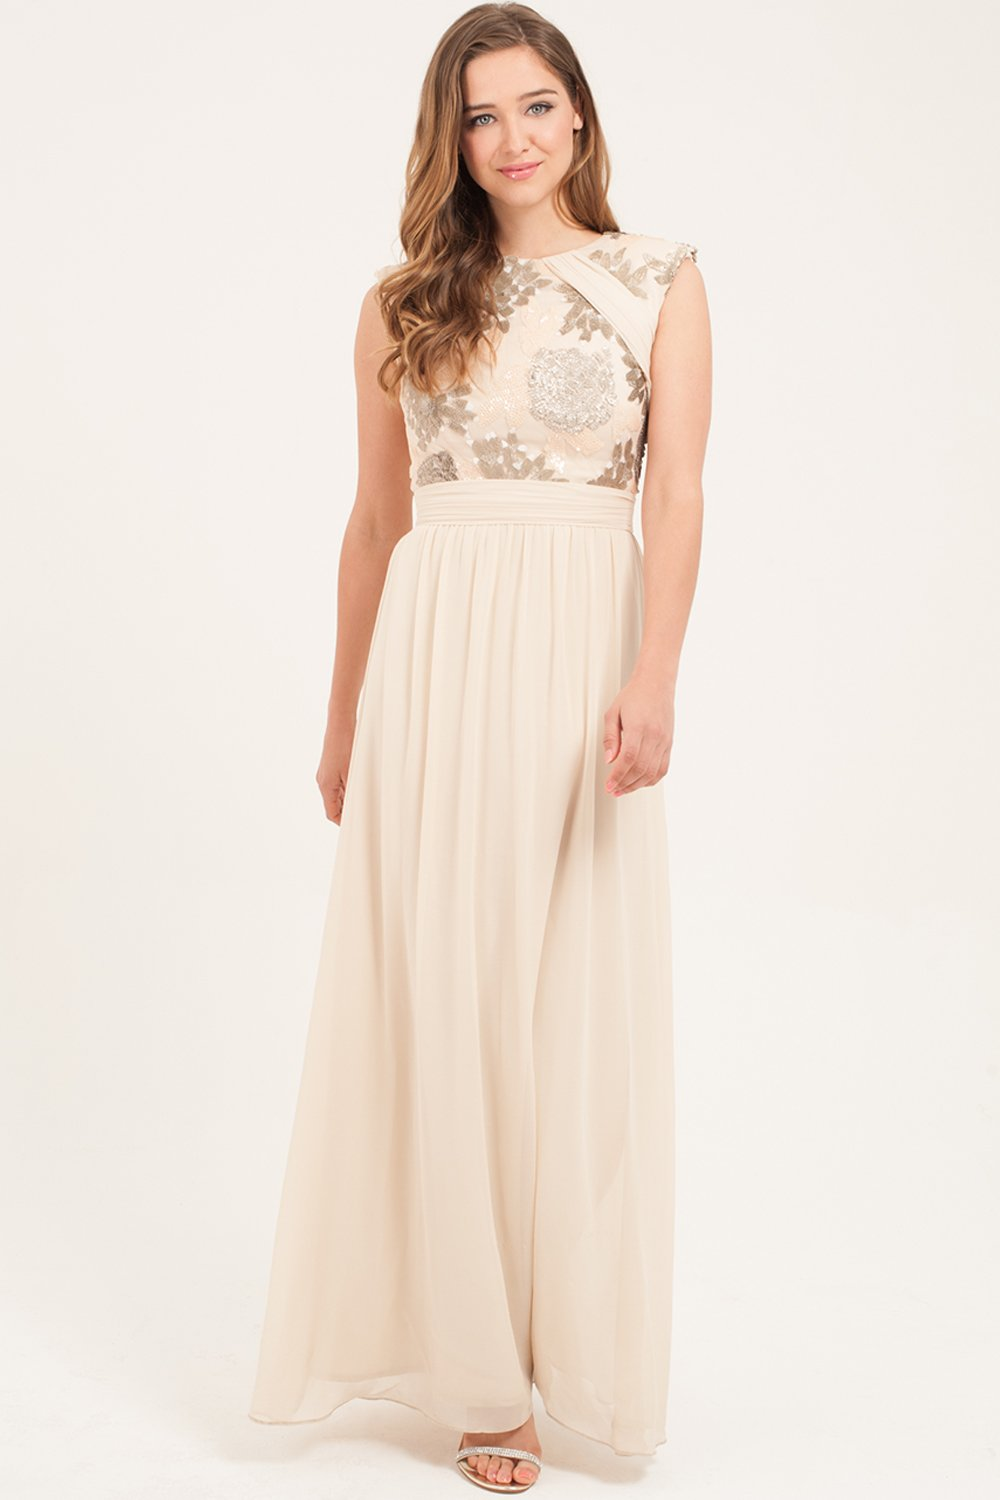 cream heavily embellished maxi dress JODQQCU